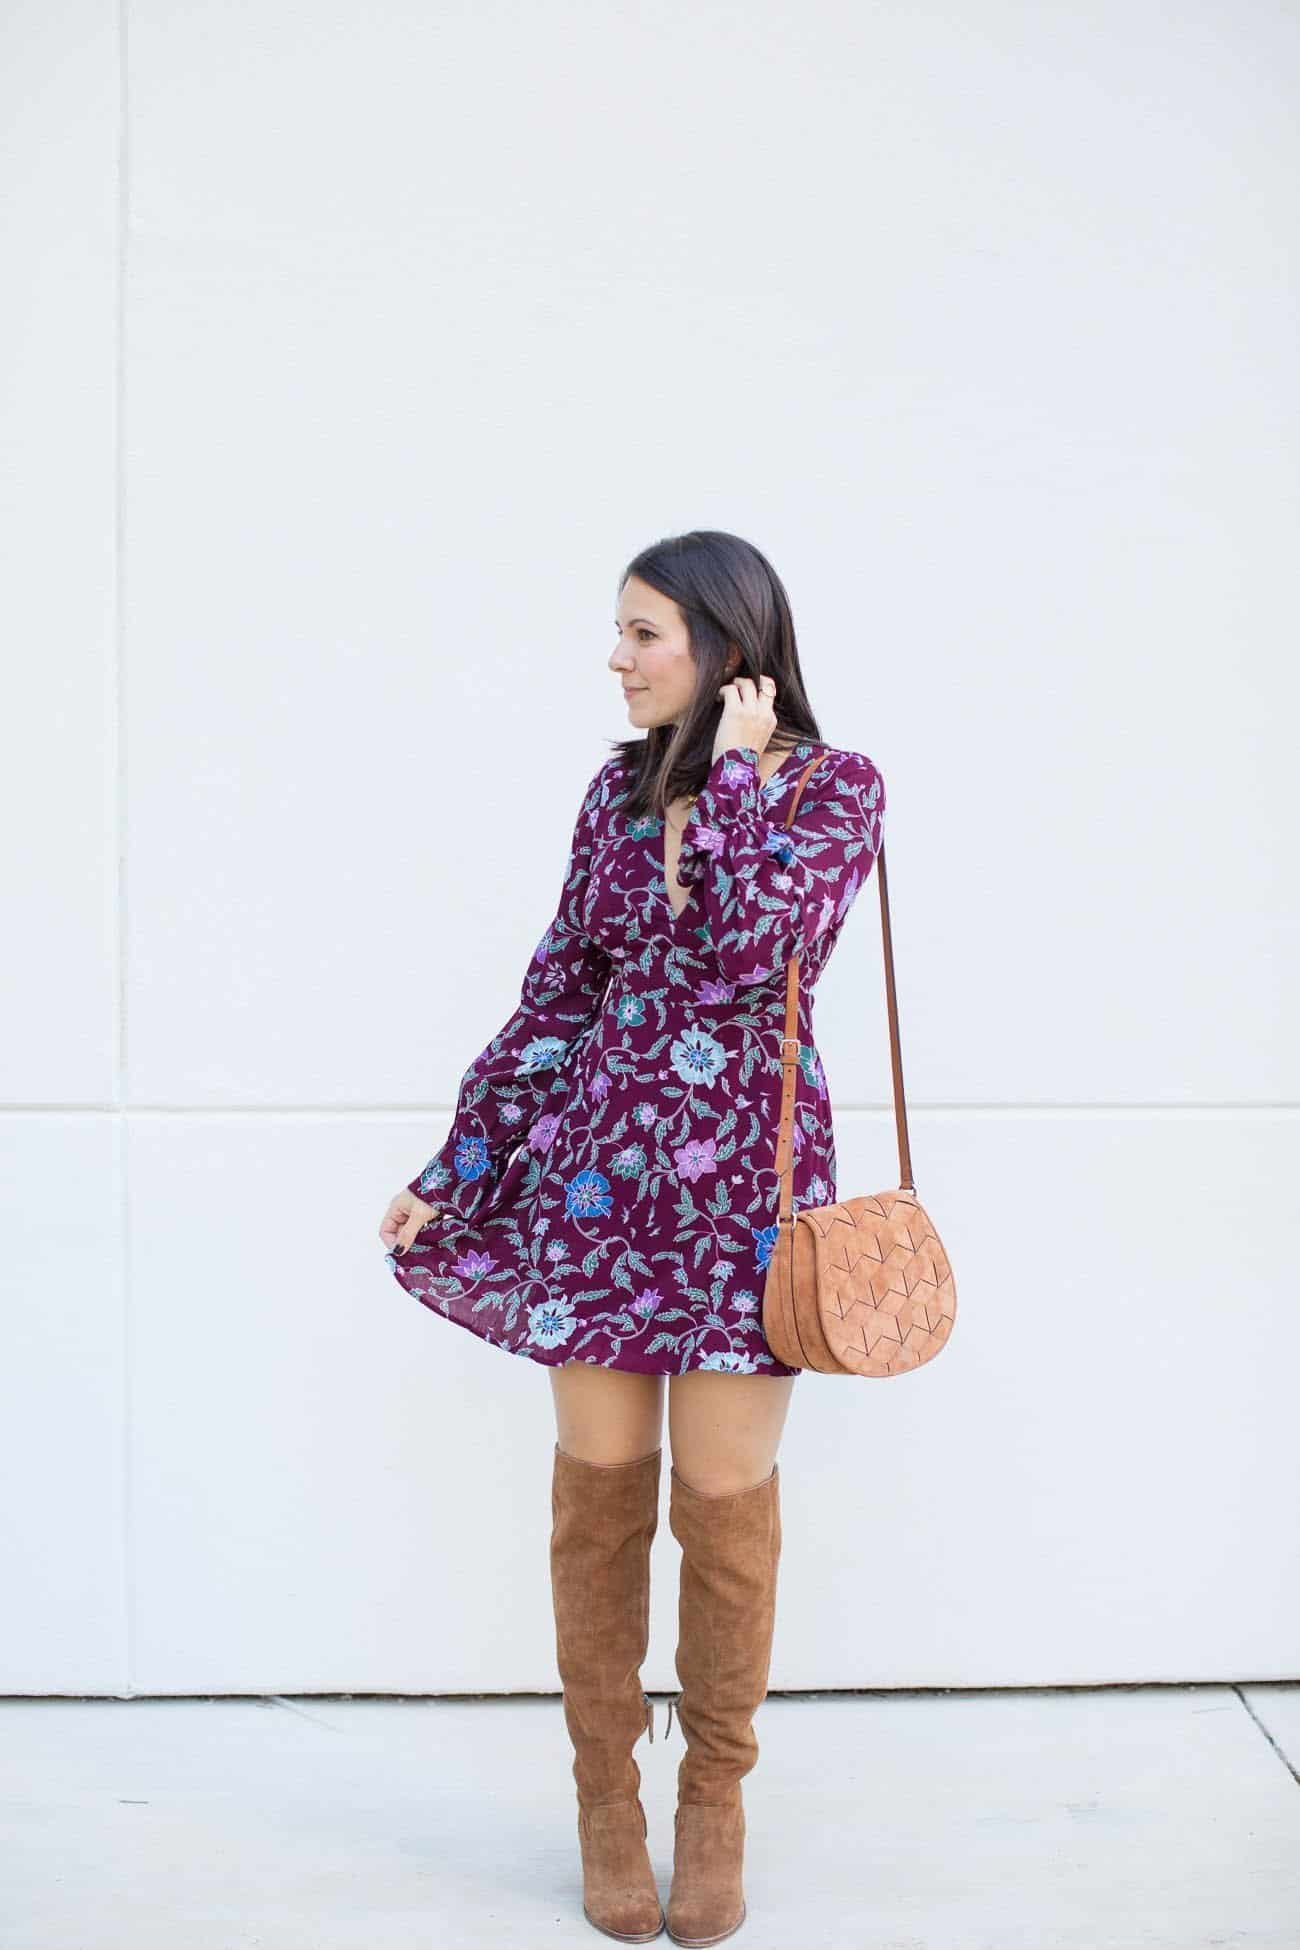 Florals - Renamed Floral Dress Outfit - My Style Vita